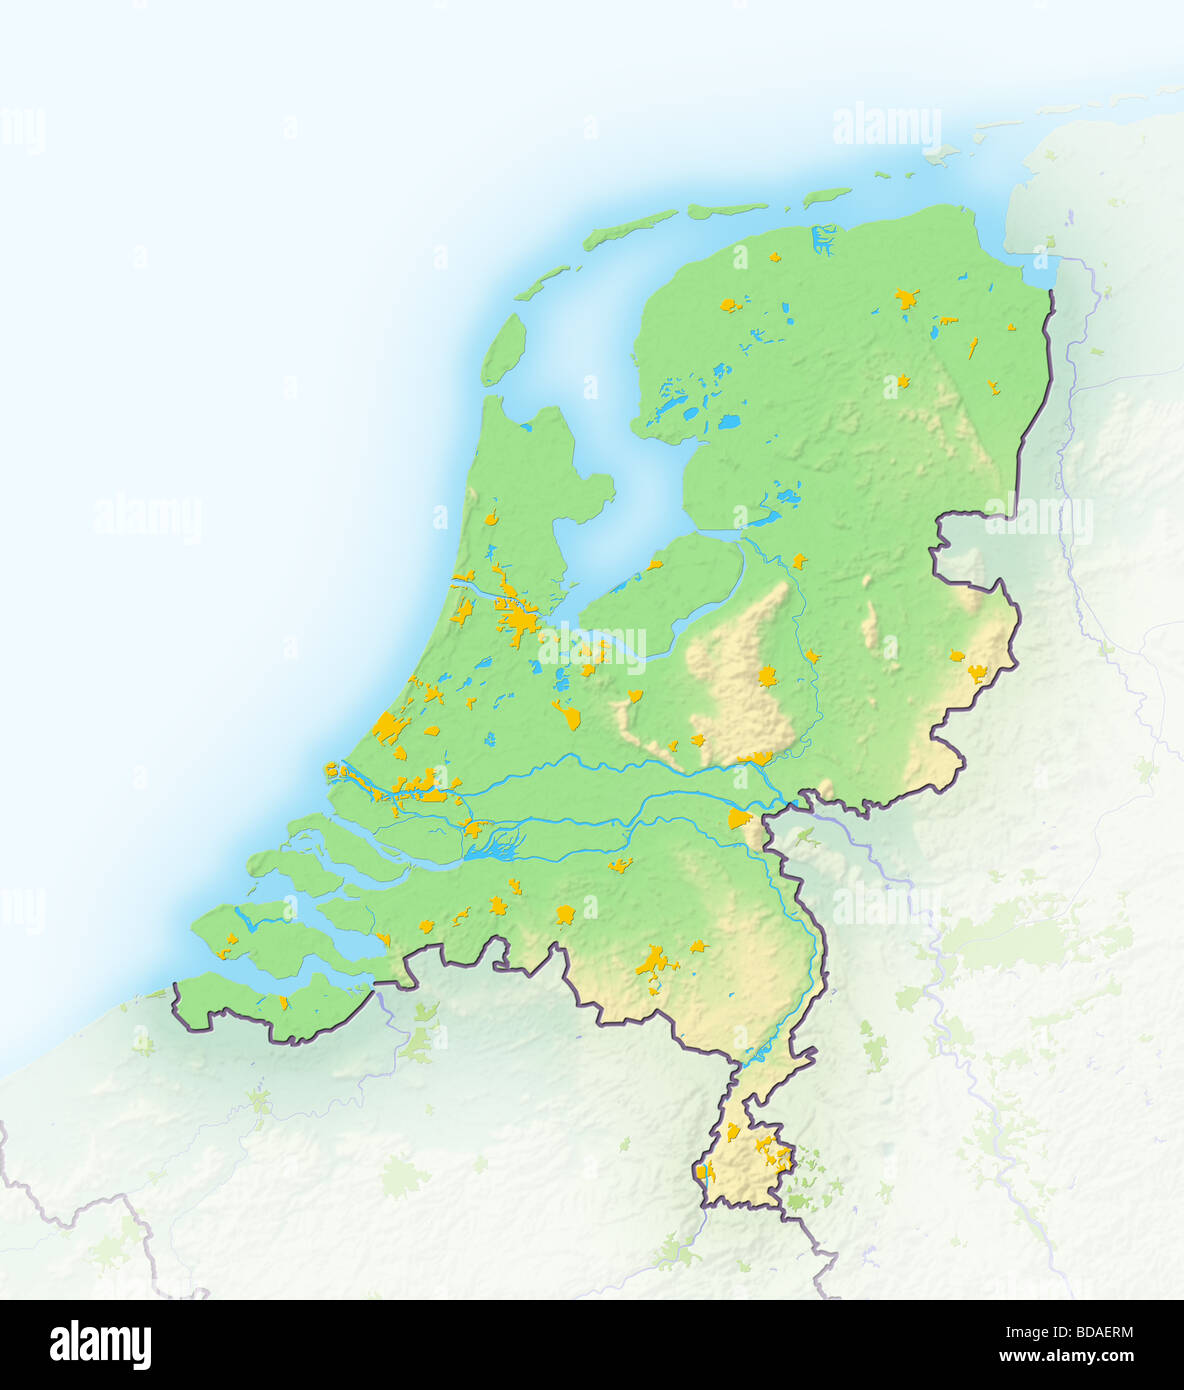 Netherlands shaded relief map Stock Photo Royalty Free Image